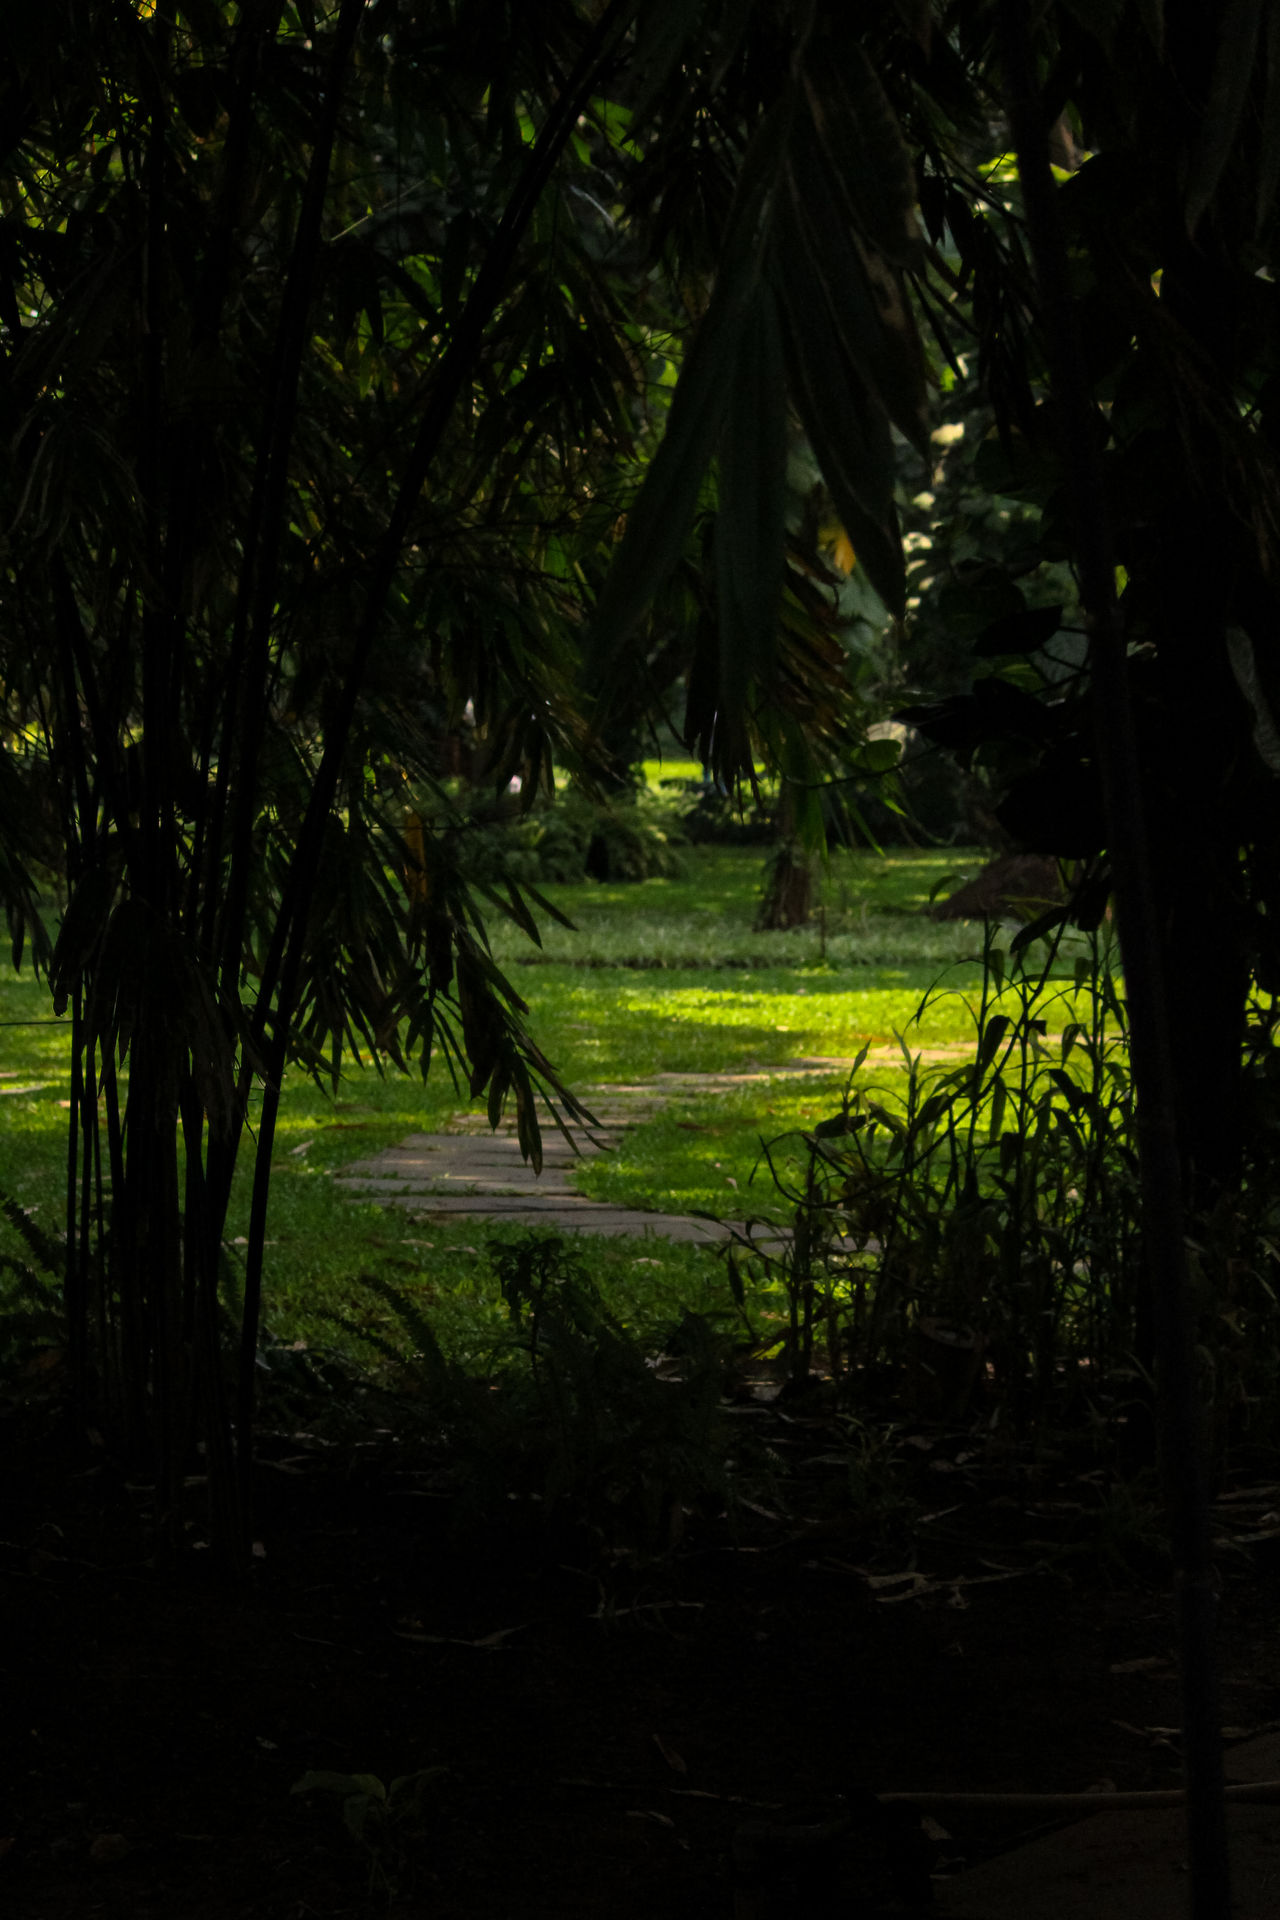 #Dark #green #light #myclick #Nature  #potrite Beauty In Nature Green Color Nature Outdoors